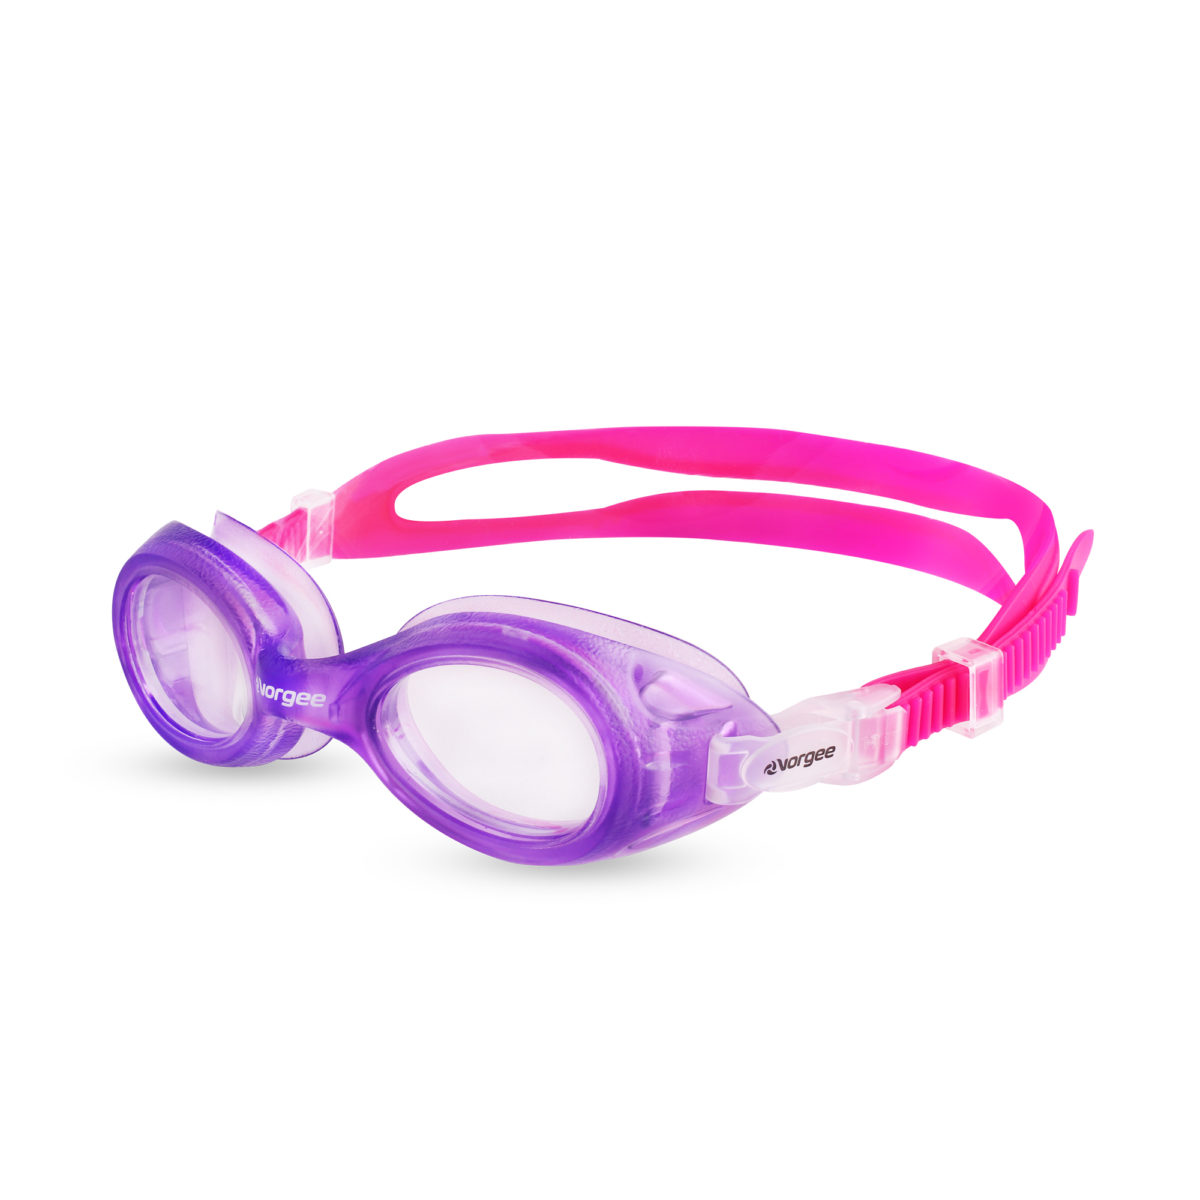 Voyager Jnr Clear - purple & pink